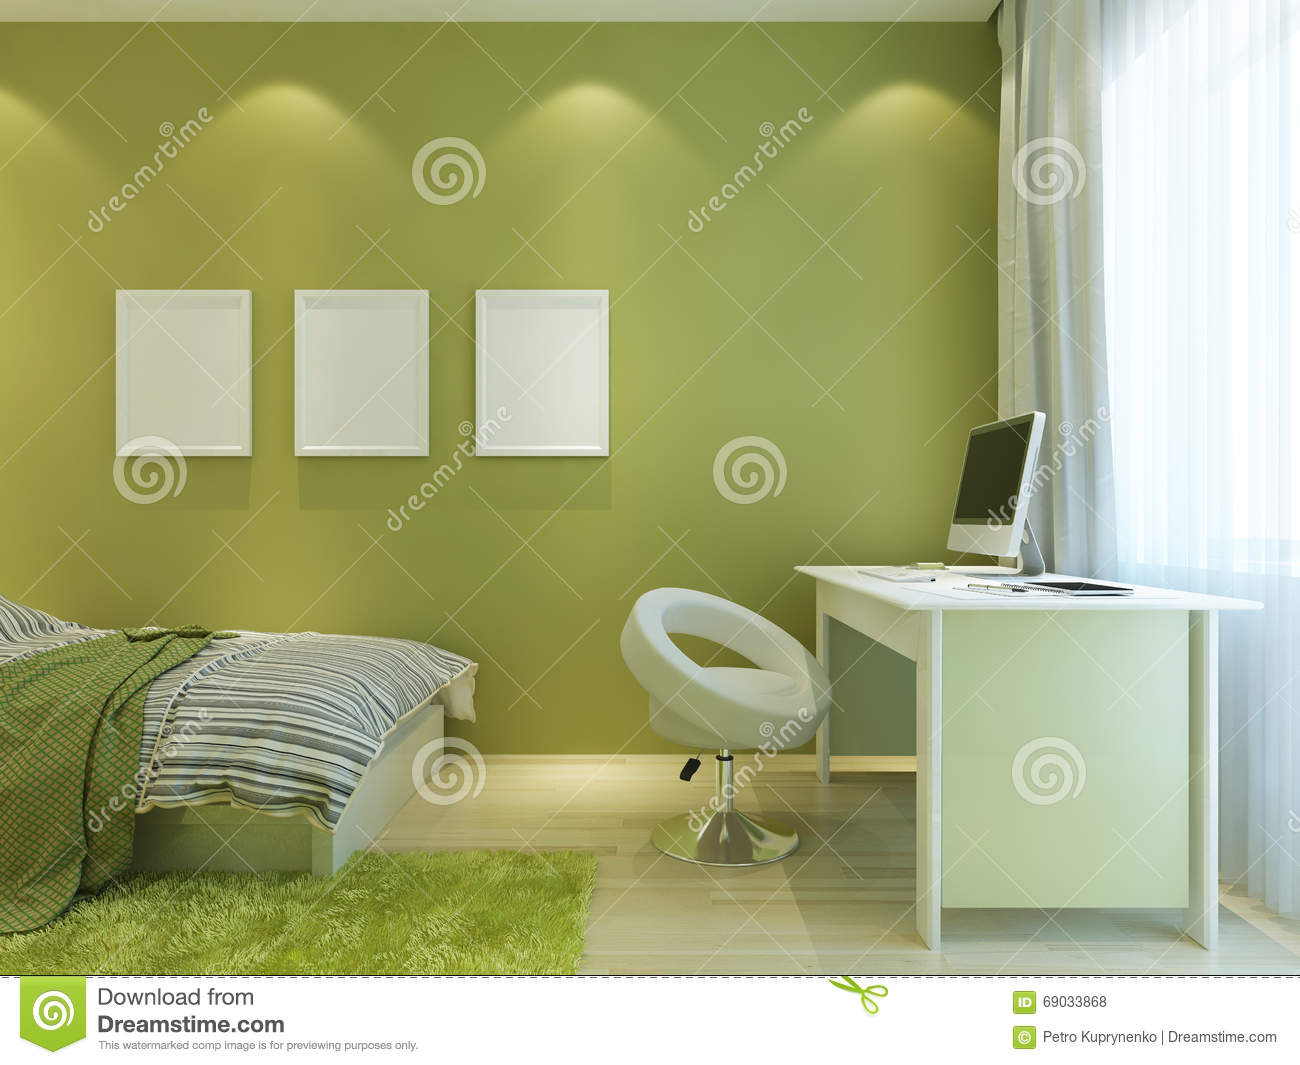 Room For A Teenager In A Modern Style With Mockup Posters On The ...